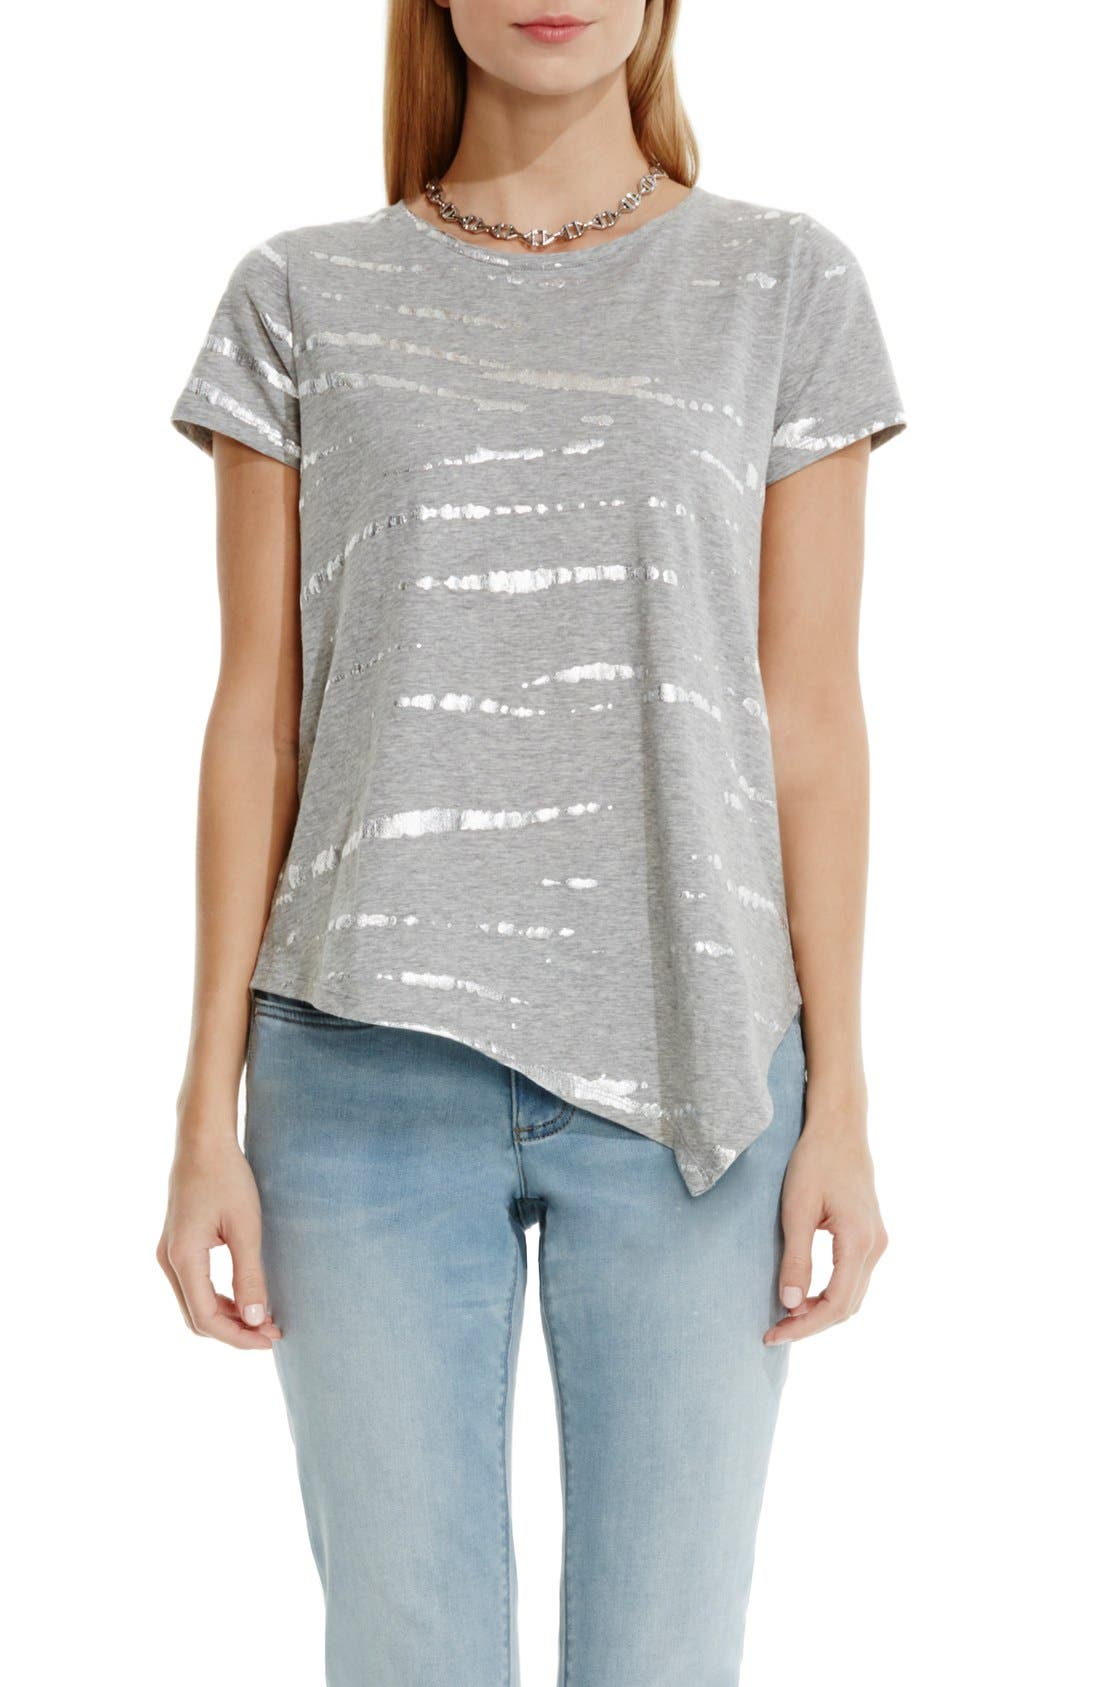 Main Image - Two by Vince Camuto Foiled Tie Dye Tee